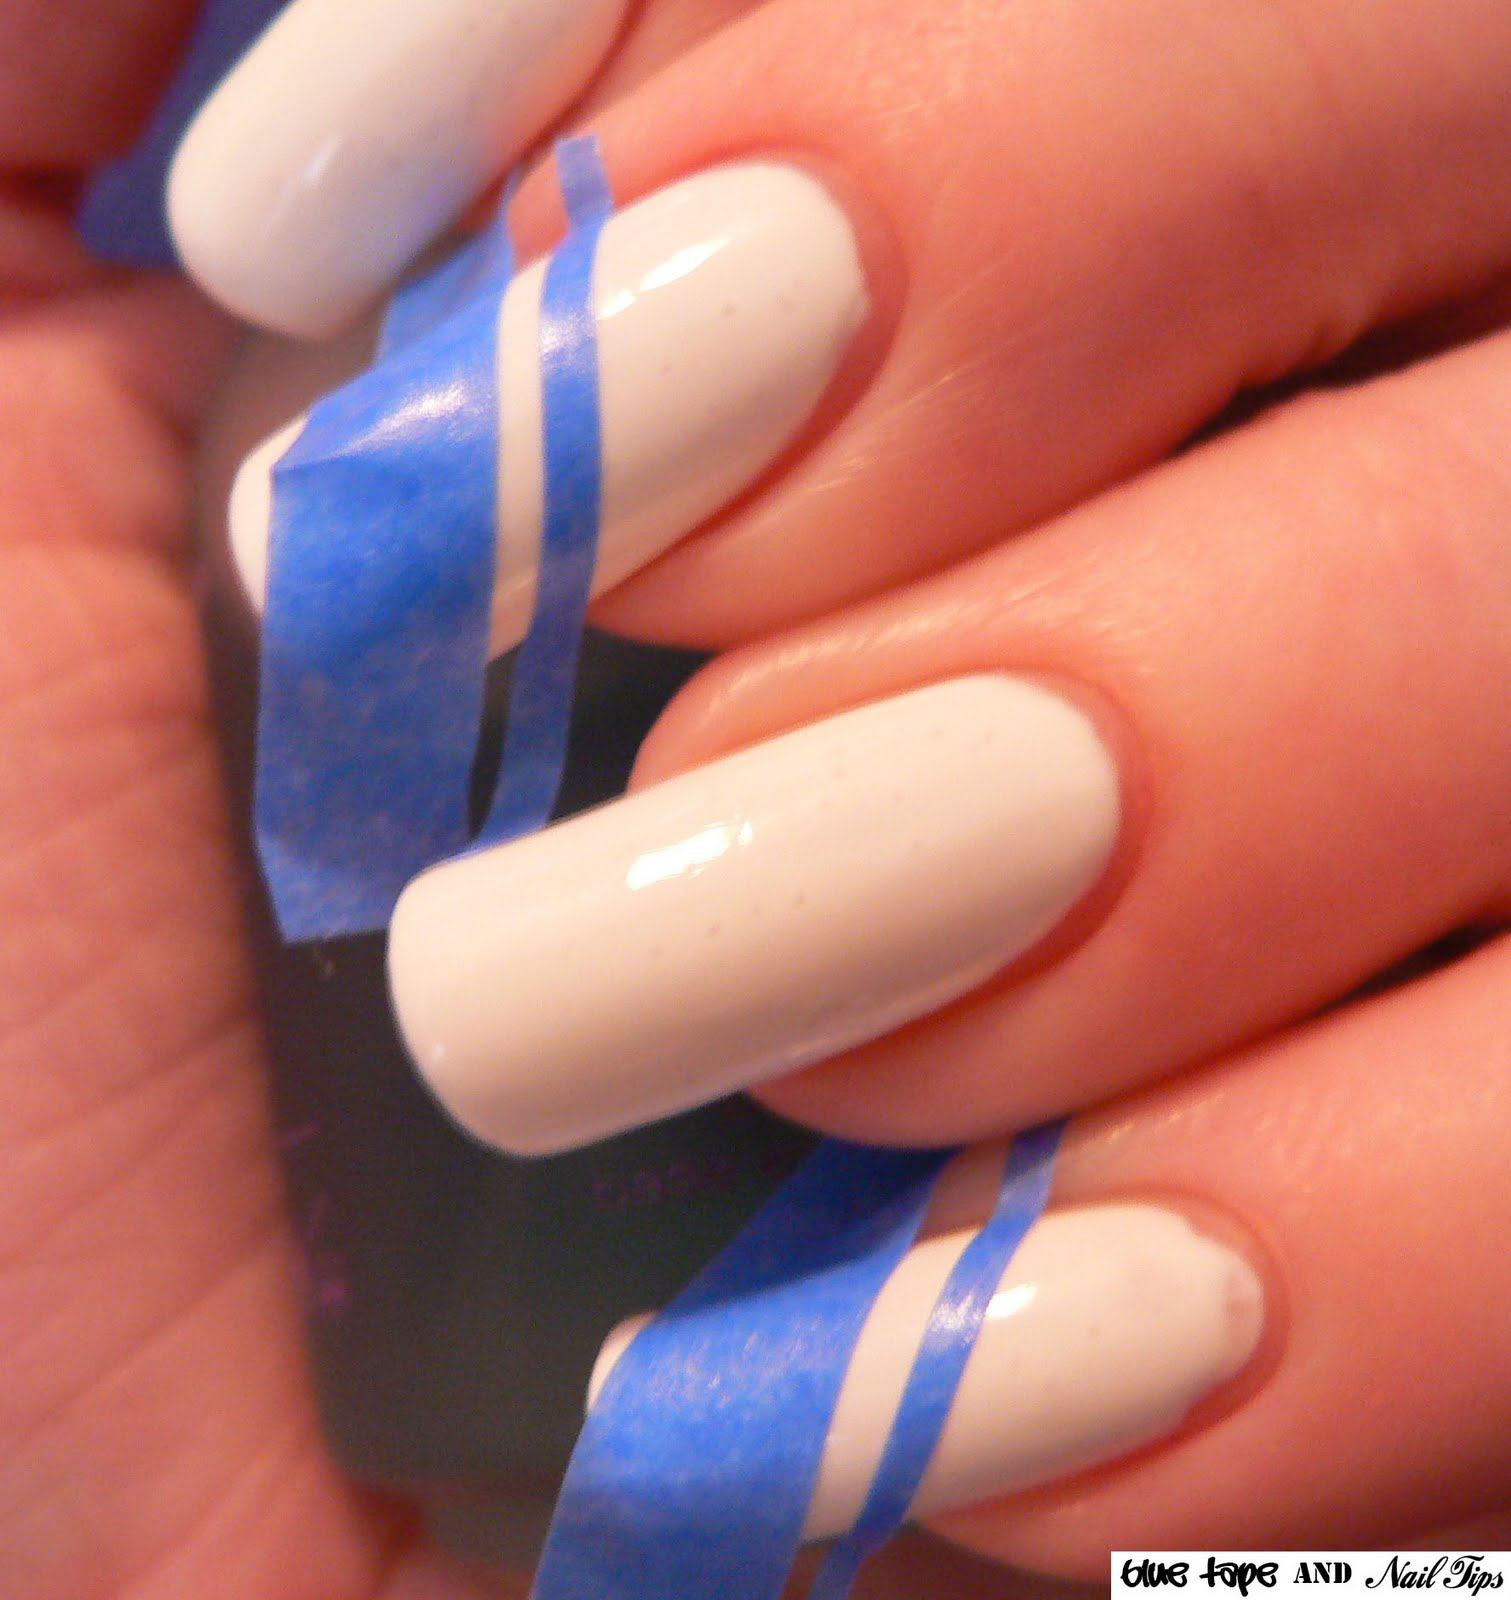 Tape and Blue Nail Tips